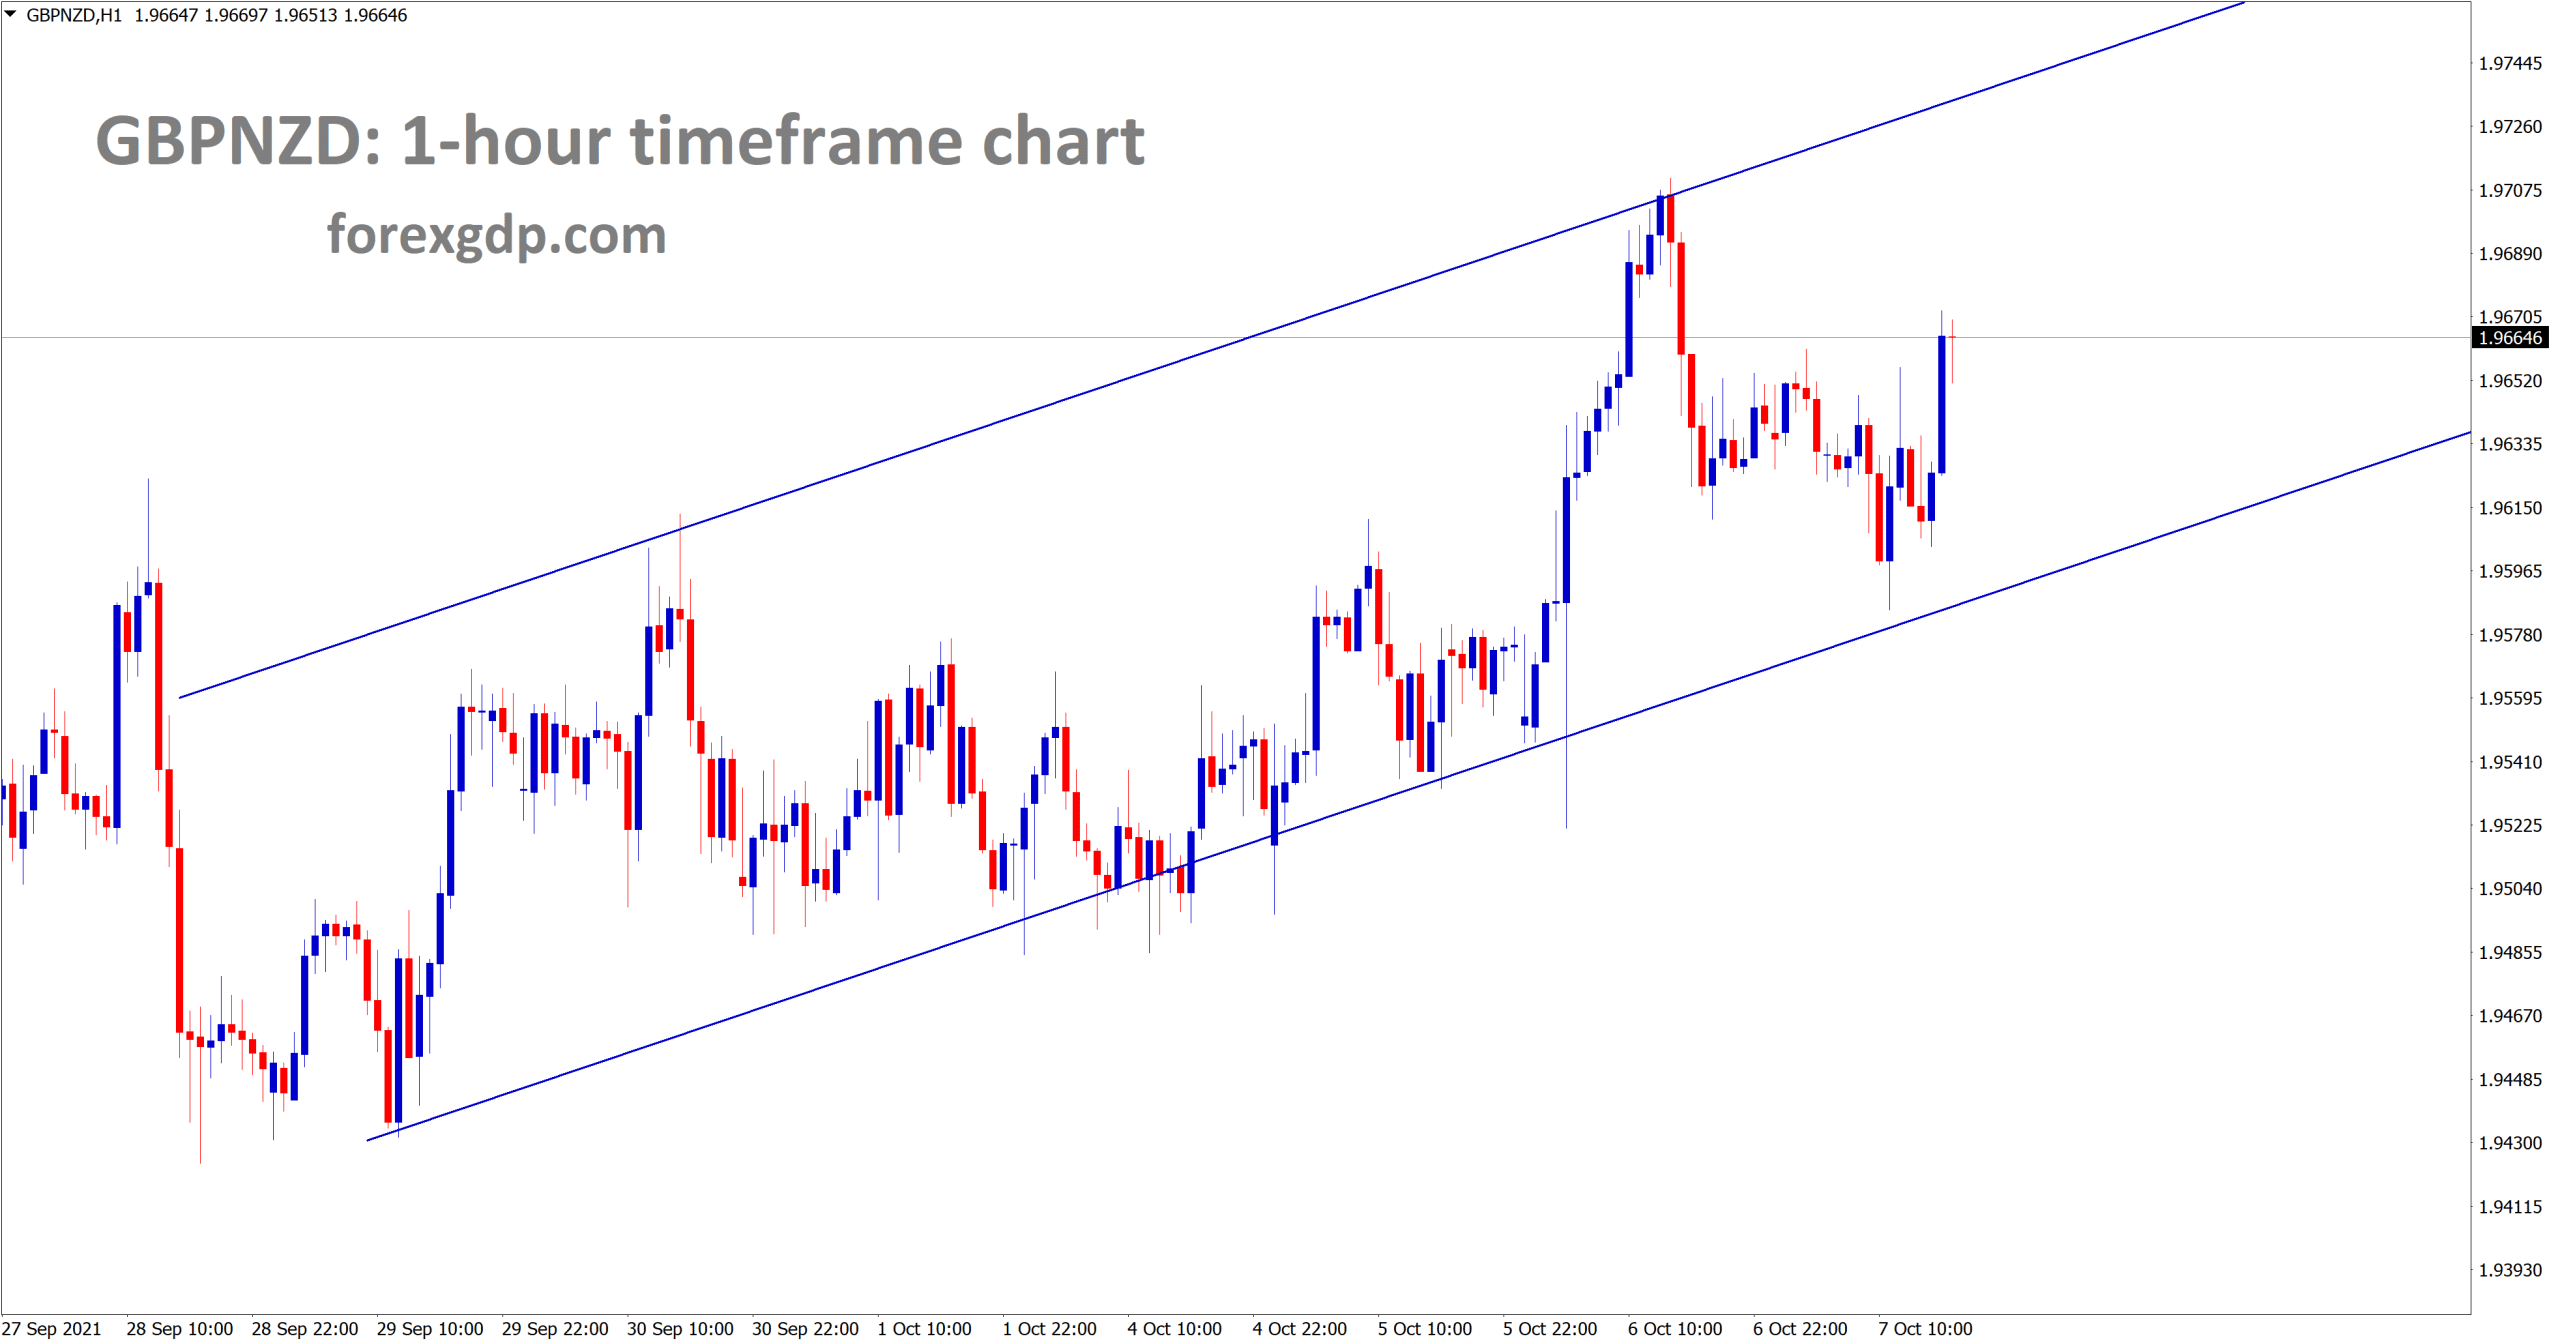 GBPNZD is moving in an Ascending channel